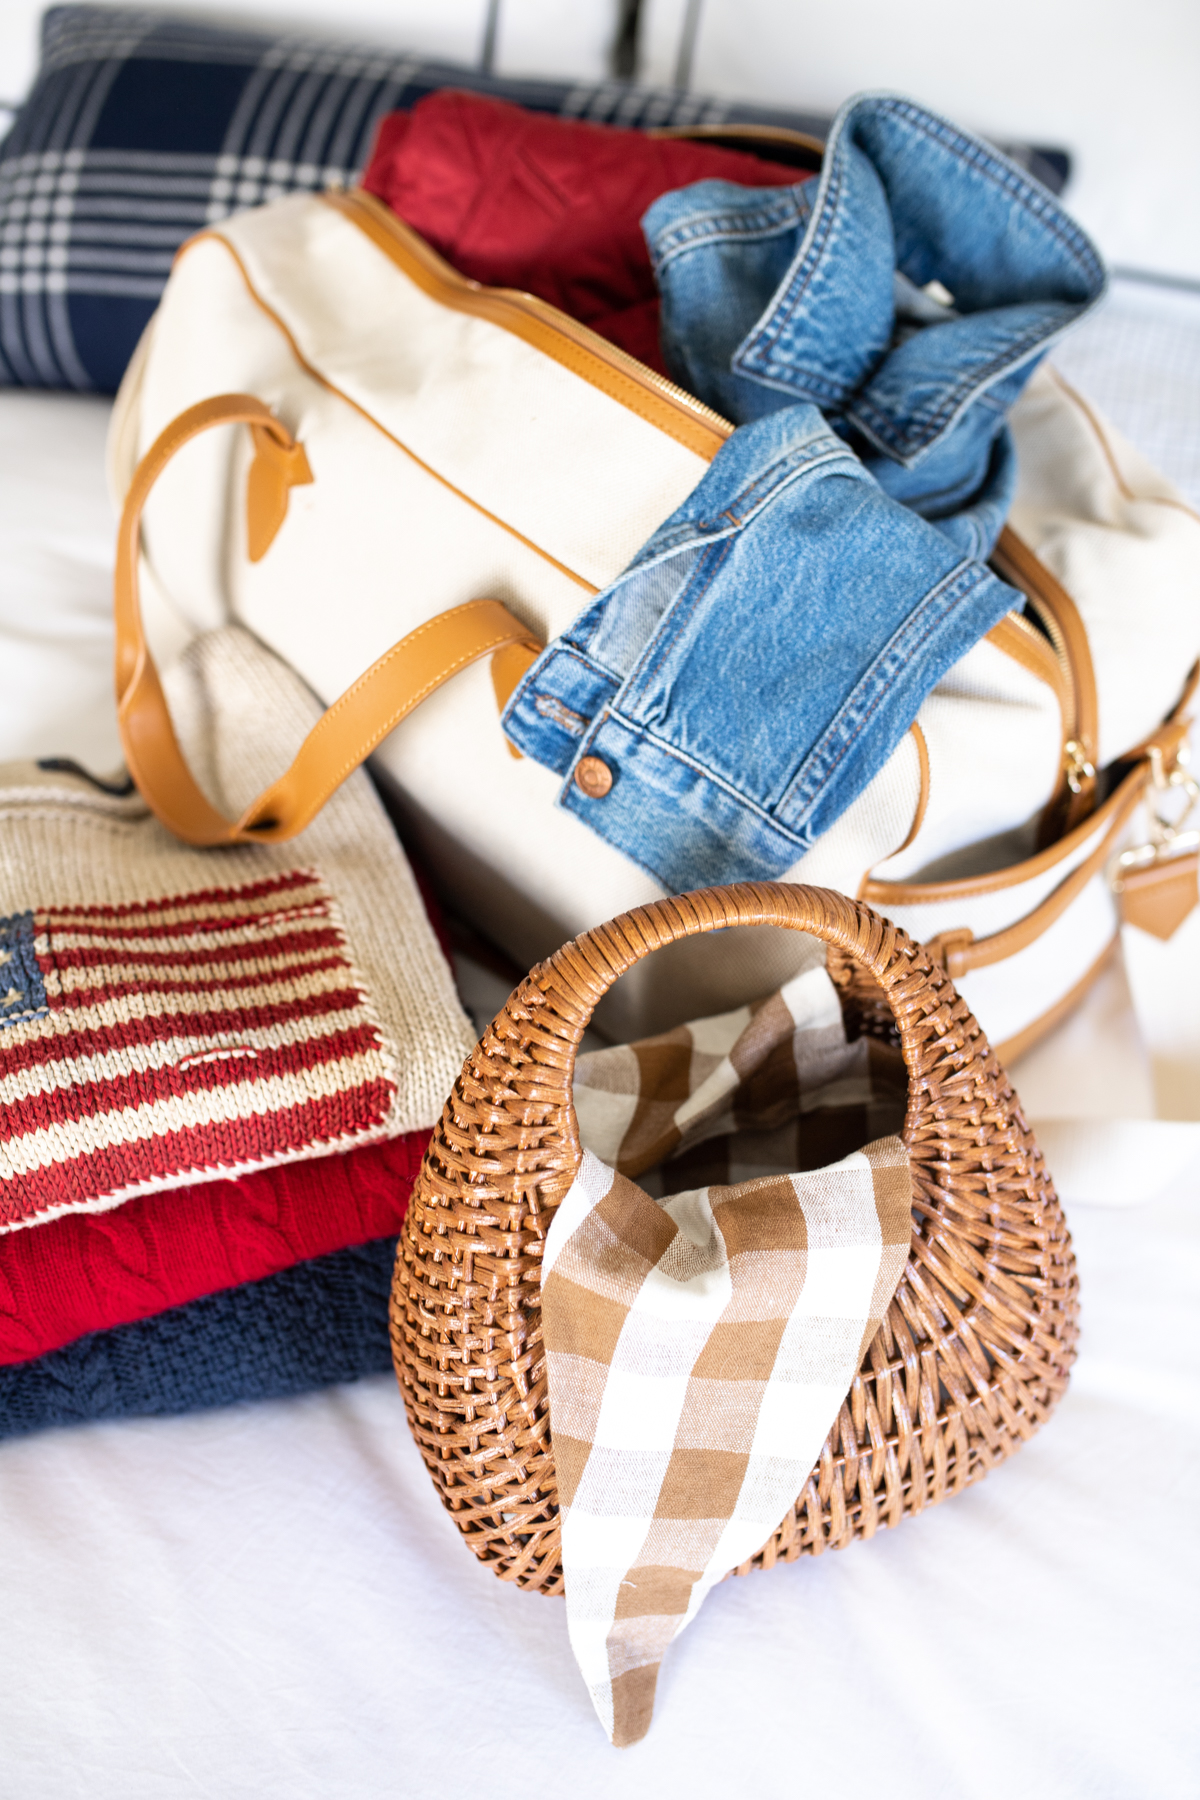 4th of July Packing List x Stacie Flinner-11